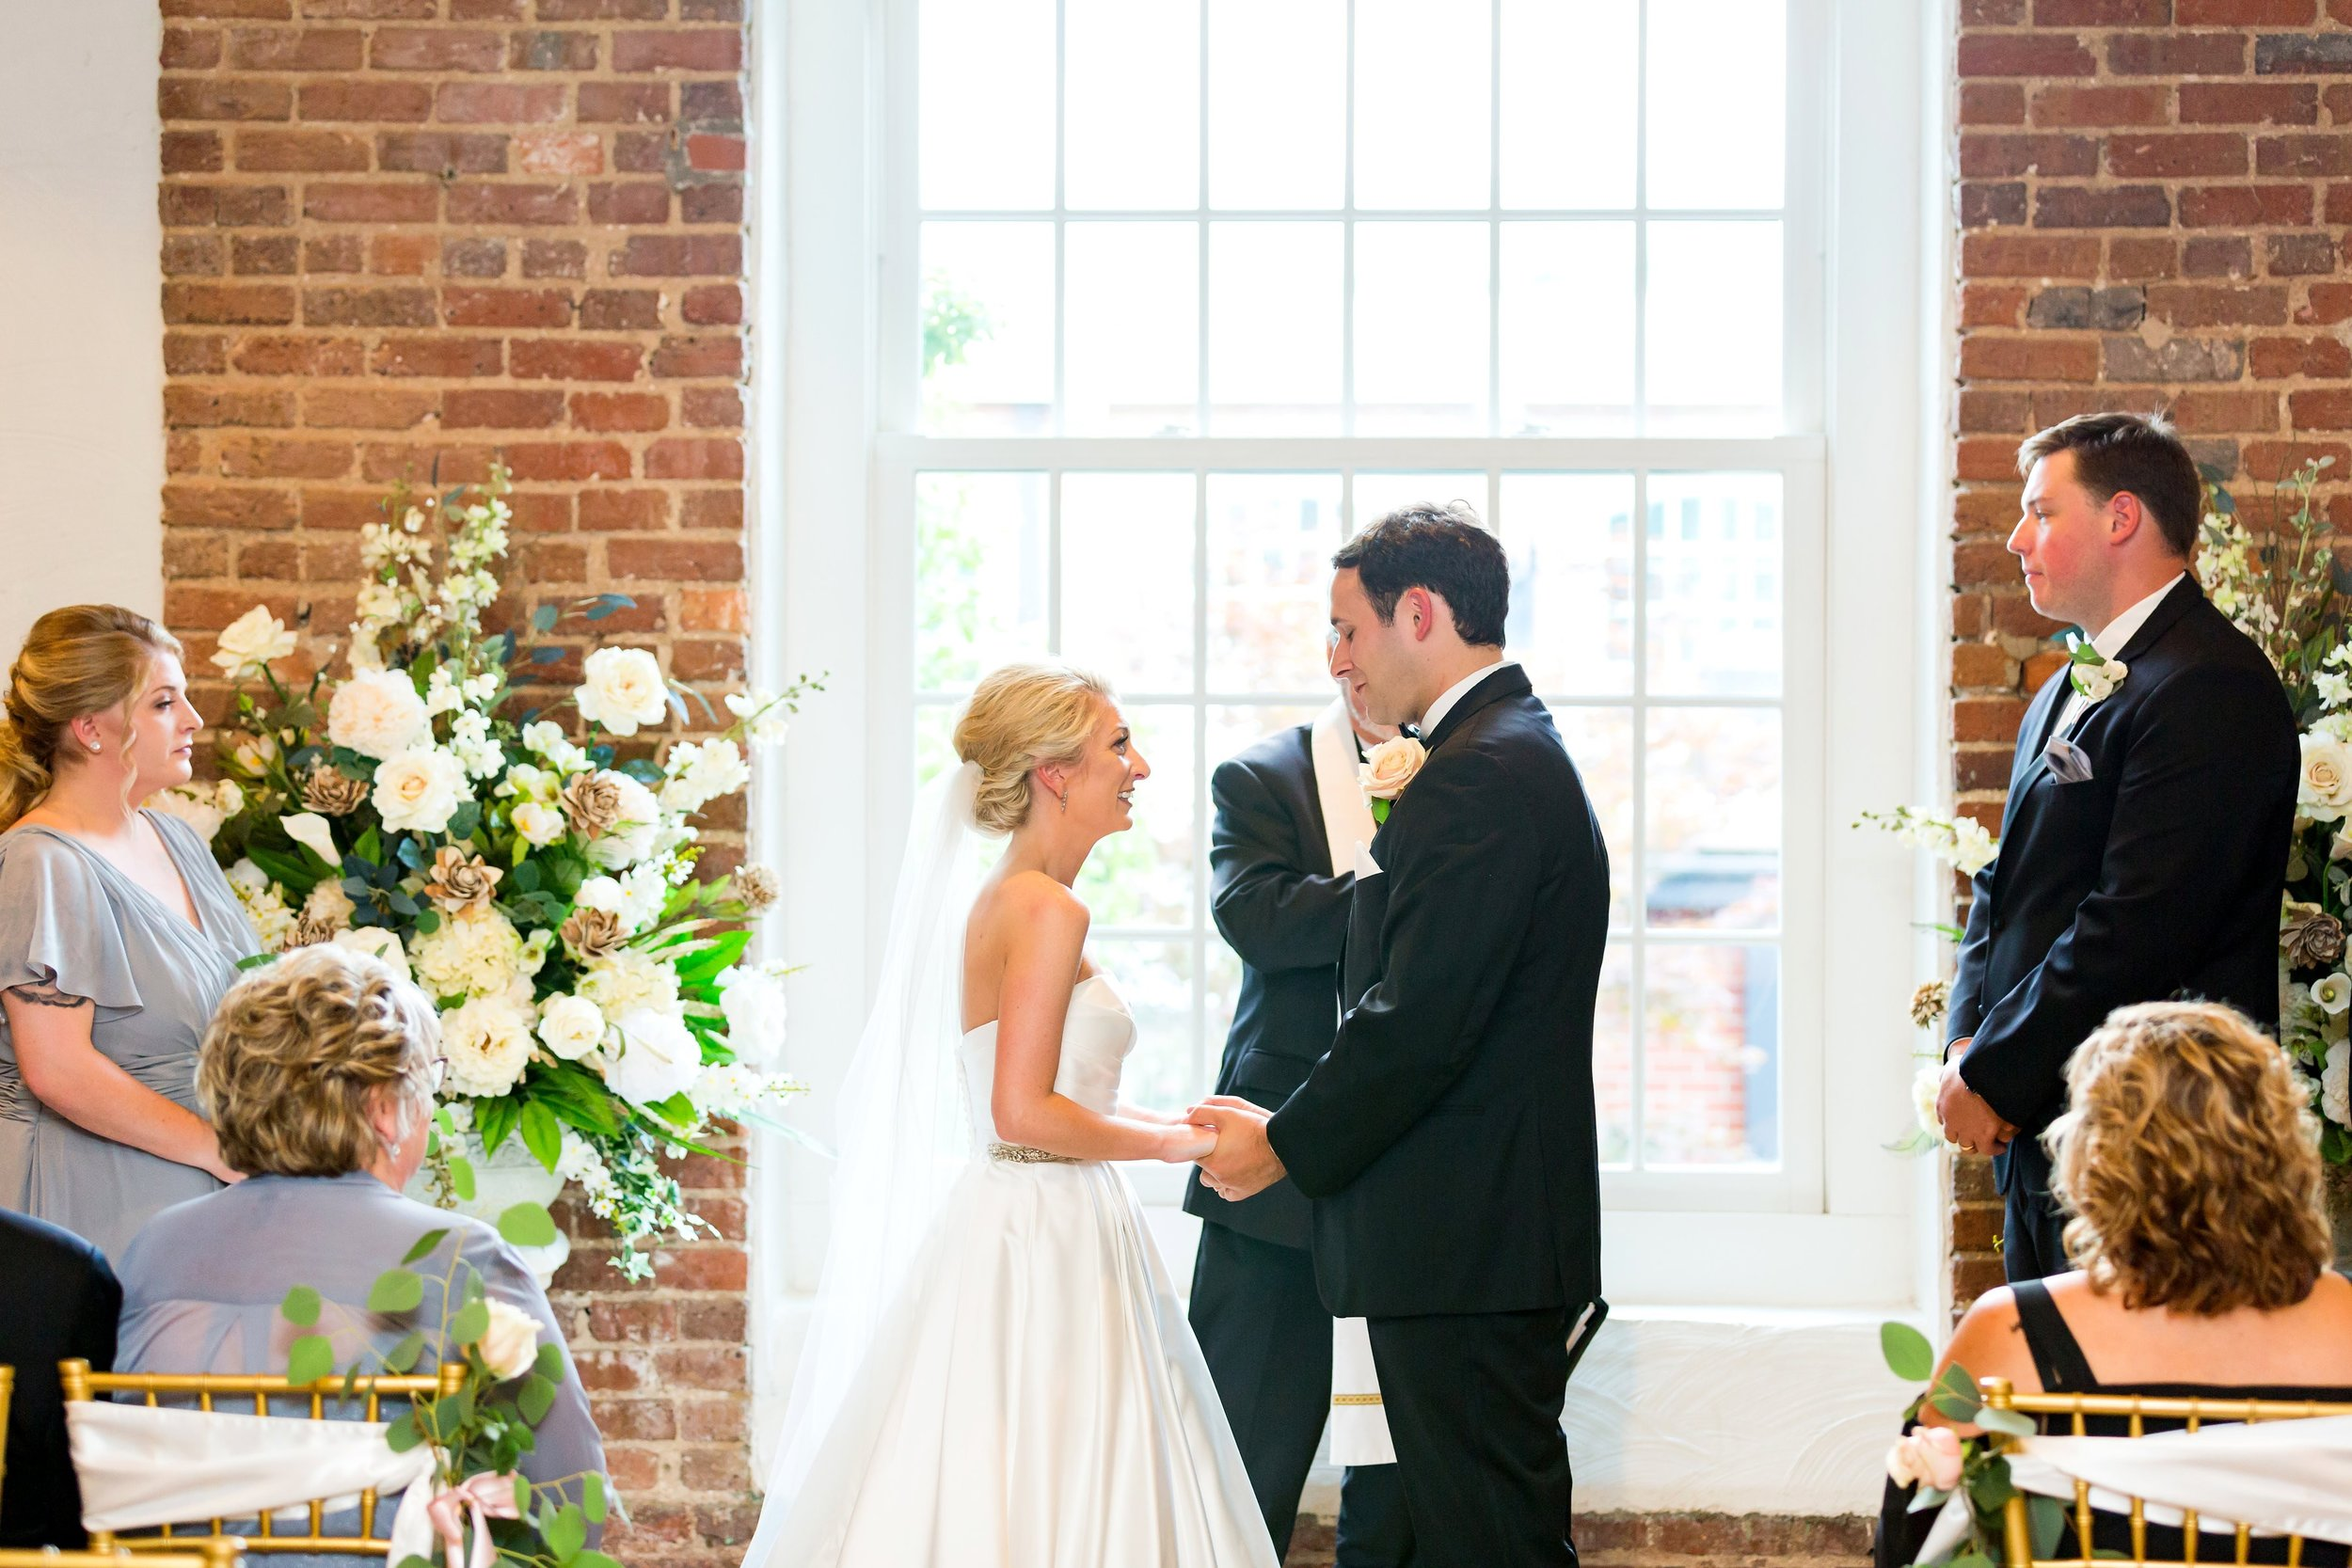 Greensboro_nc_wedding_photographer_Jodi_gray_colonnade-108.jpg